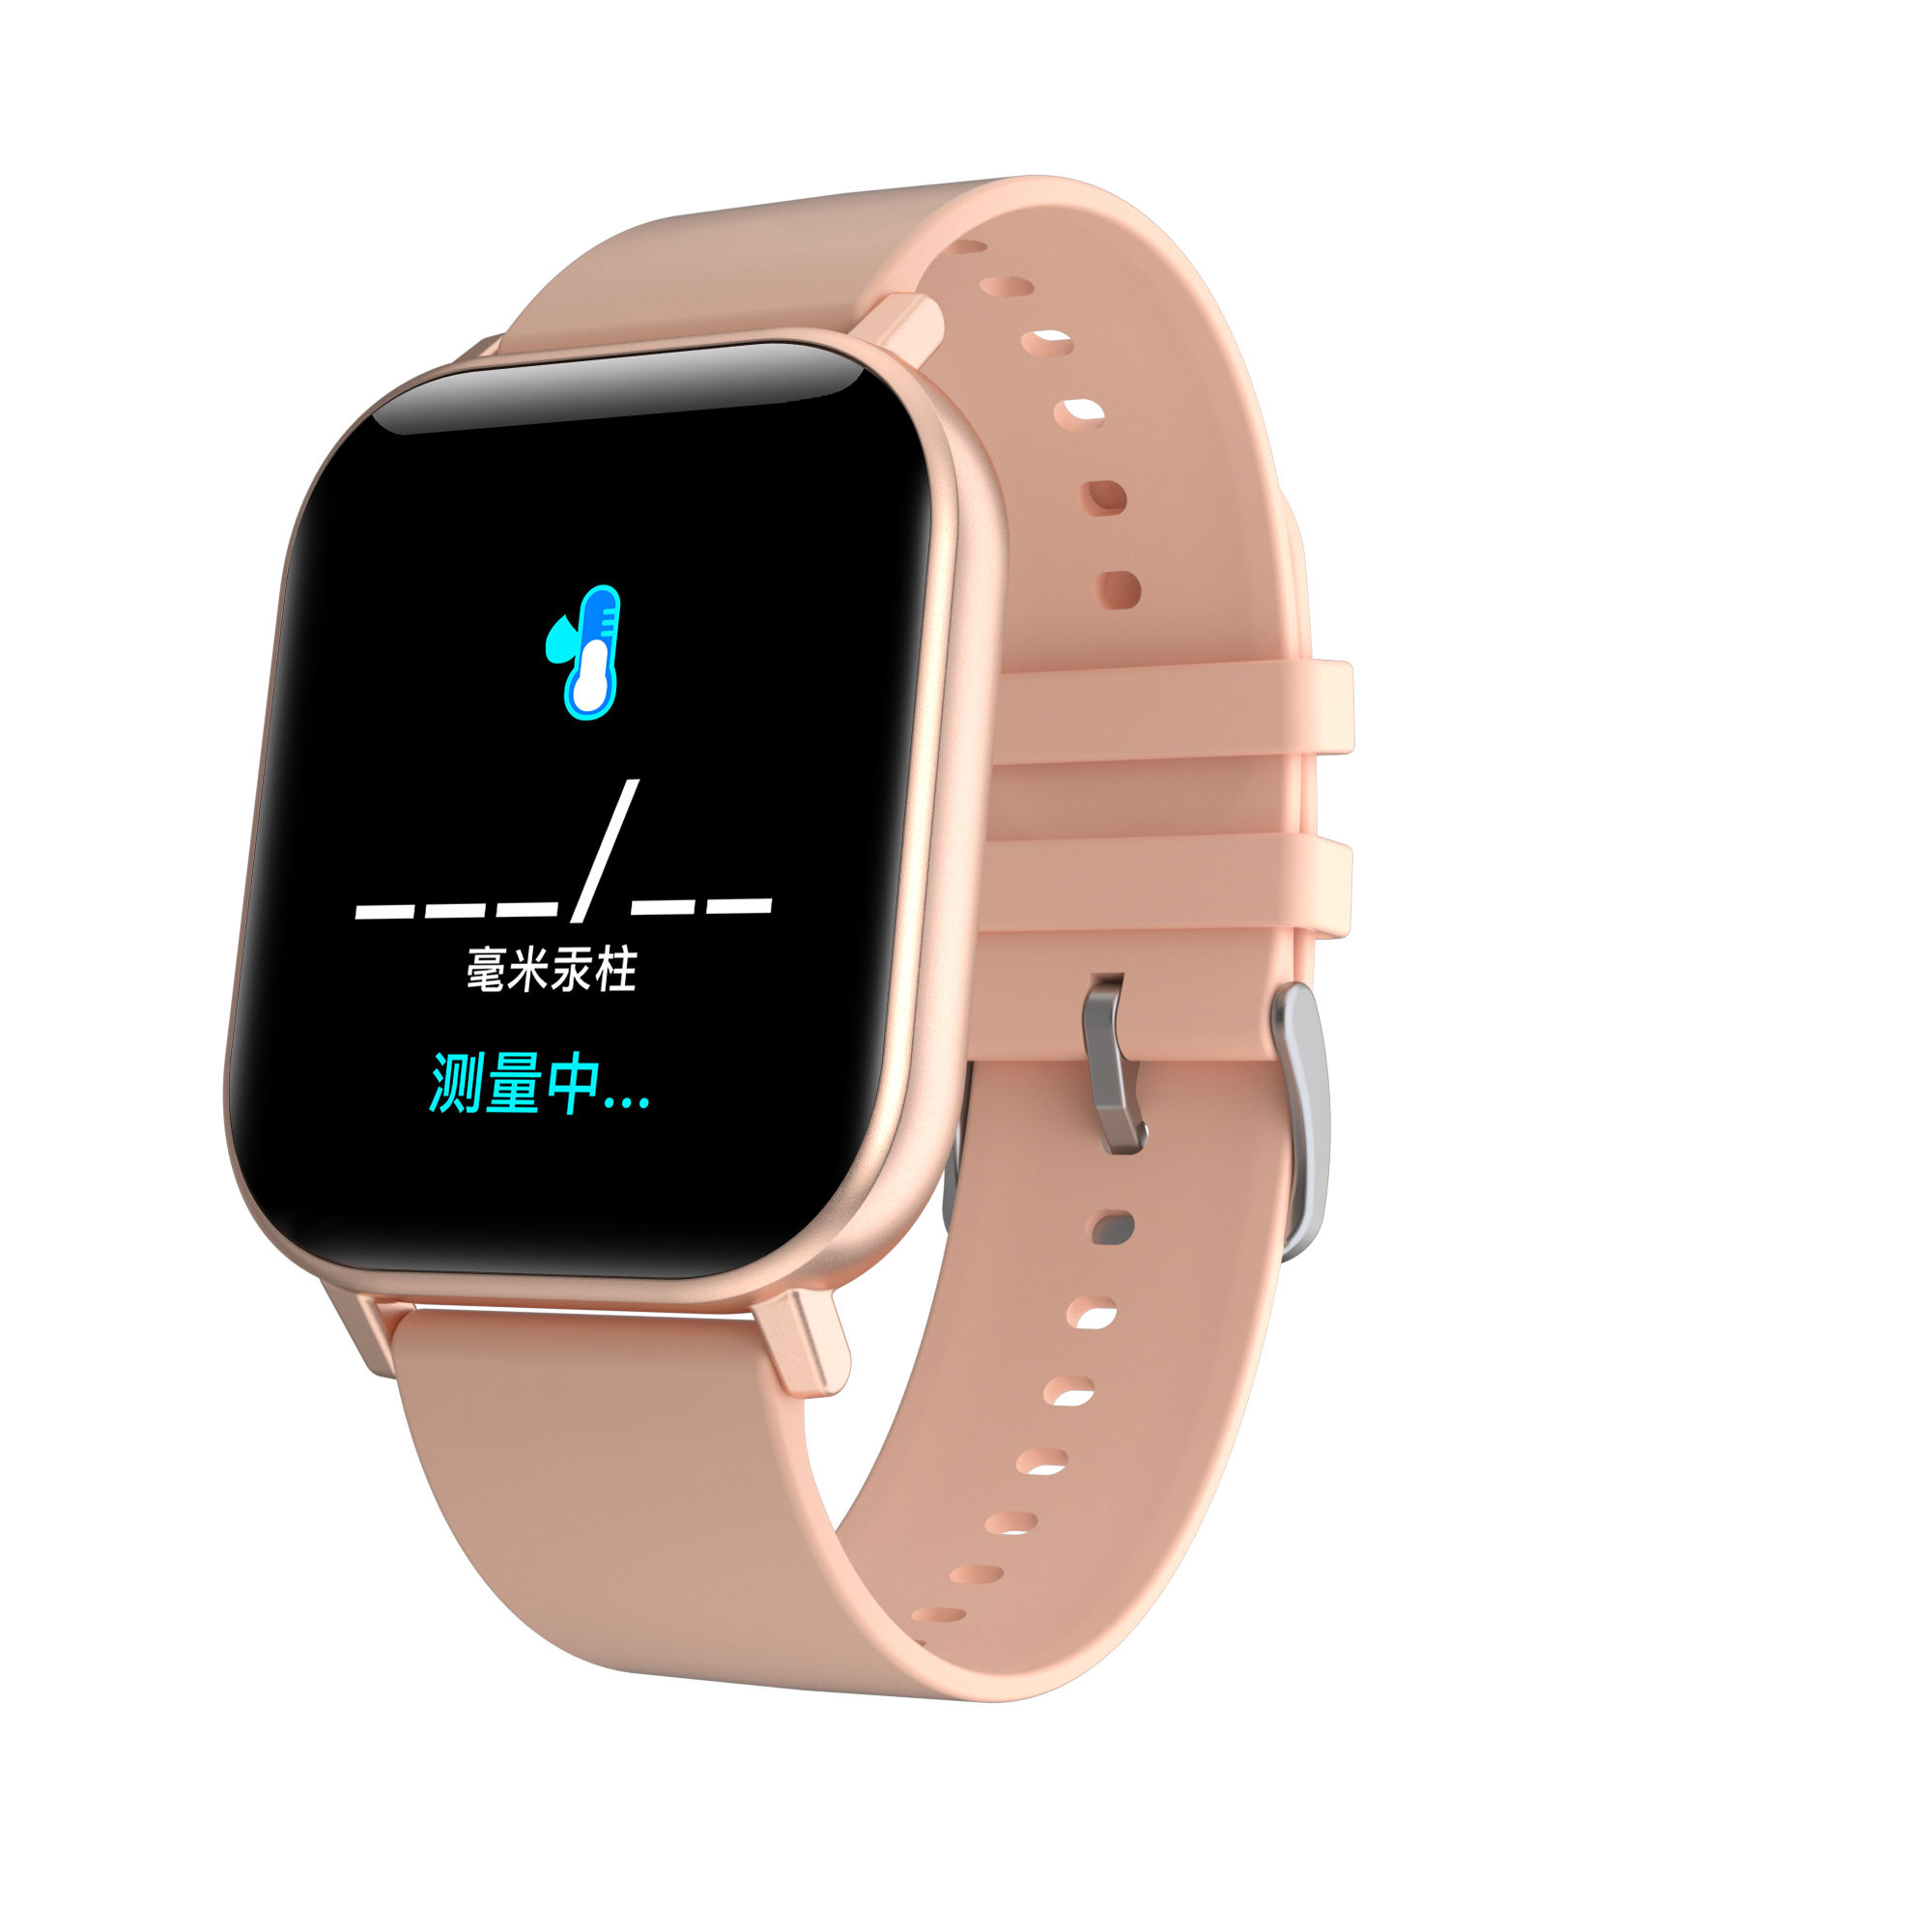 2020 Kesehatan Gelang Mi Smart Watch Taiwan dan Hong Kong Smartwatches Kustom OEM Smartwatches Smart Cincin Bluetooth